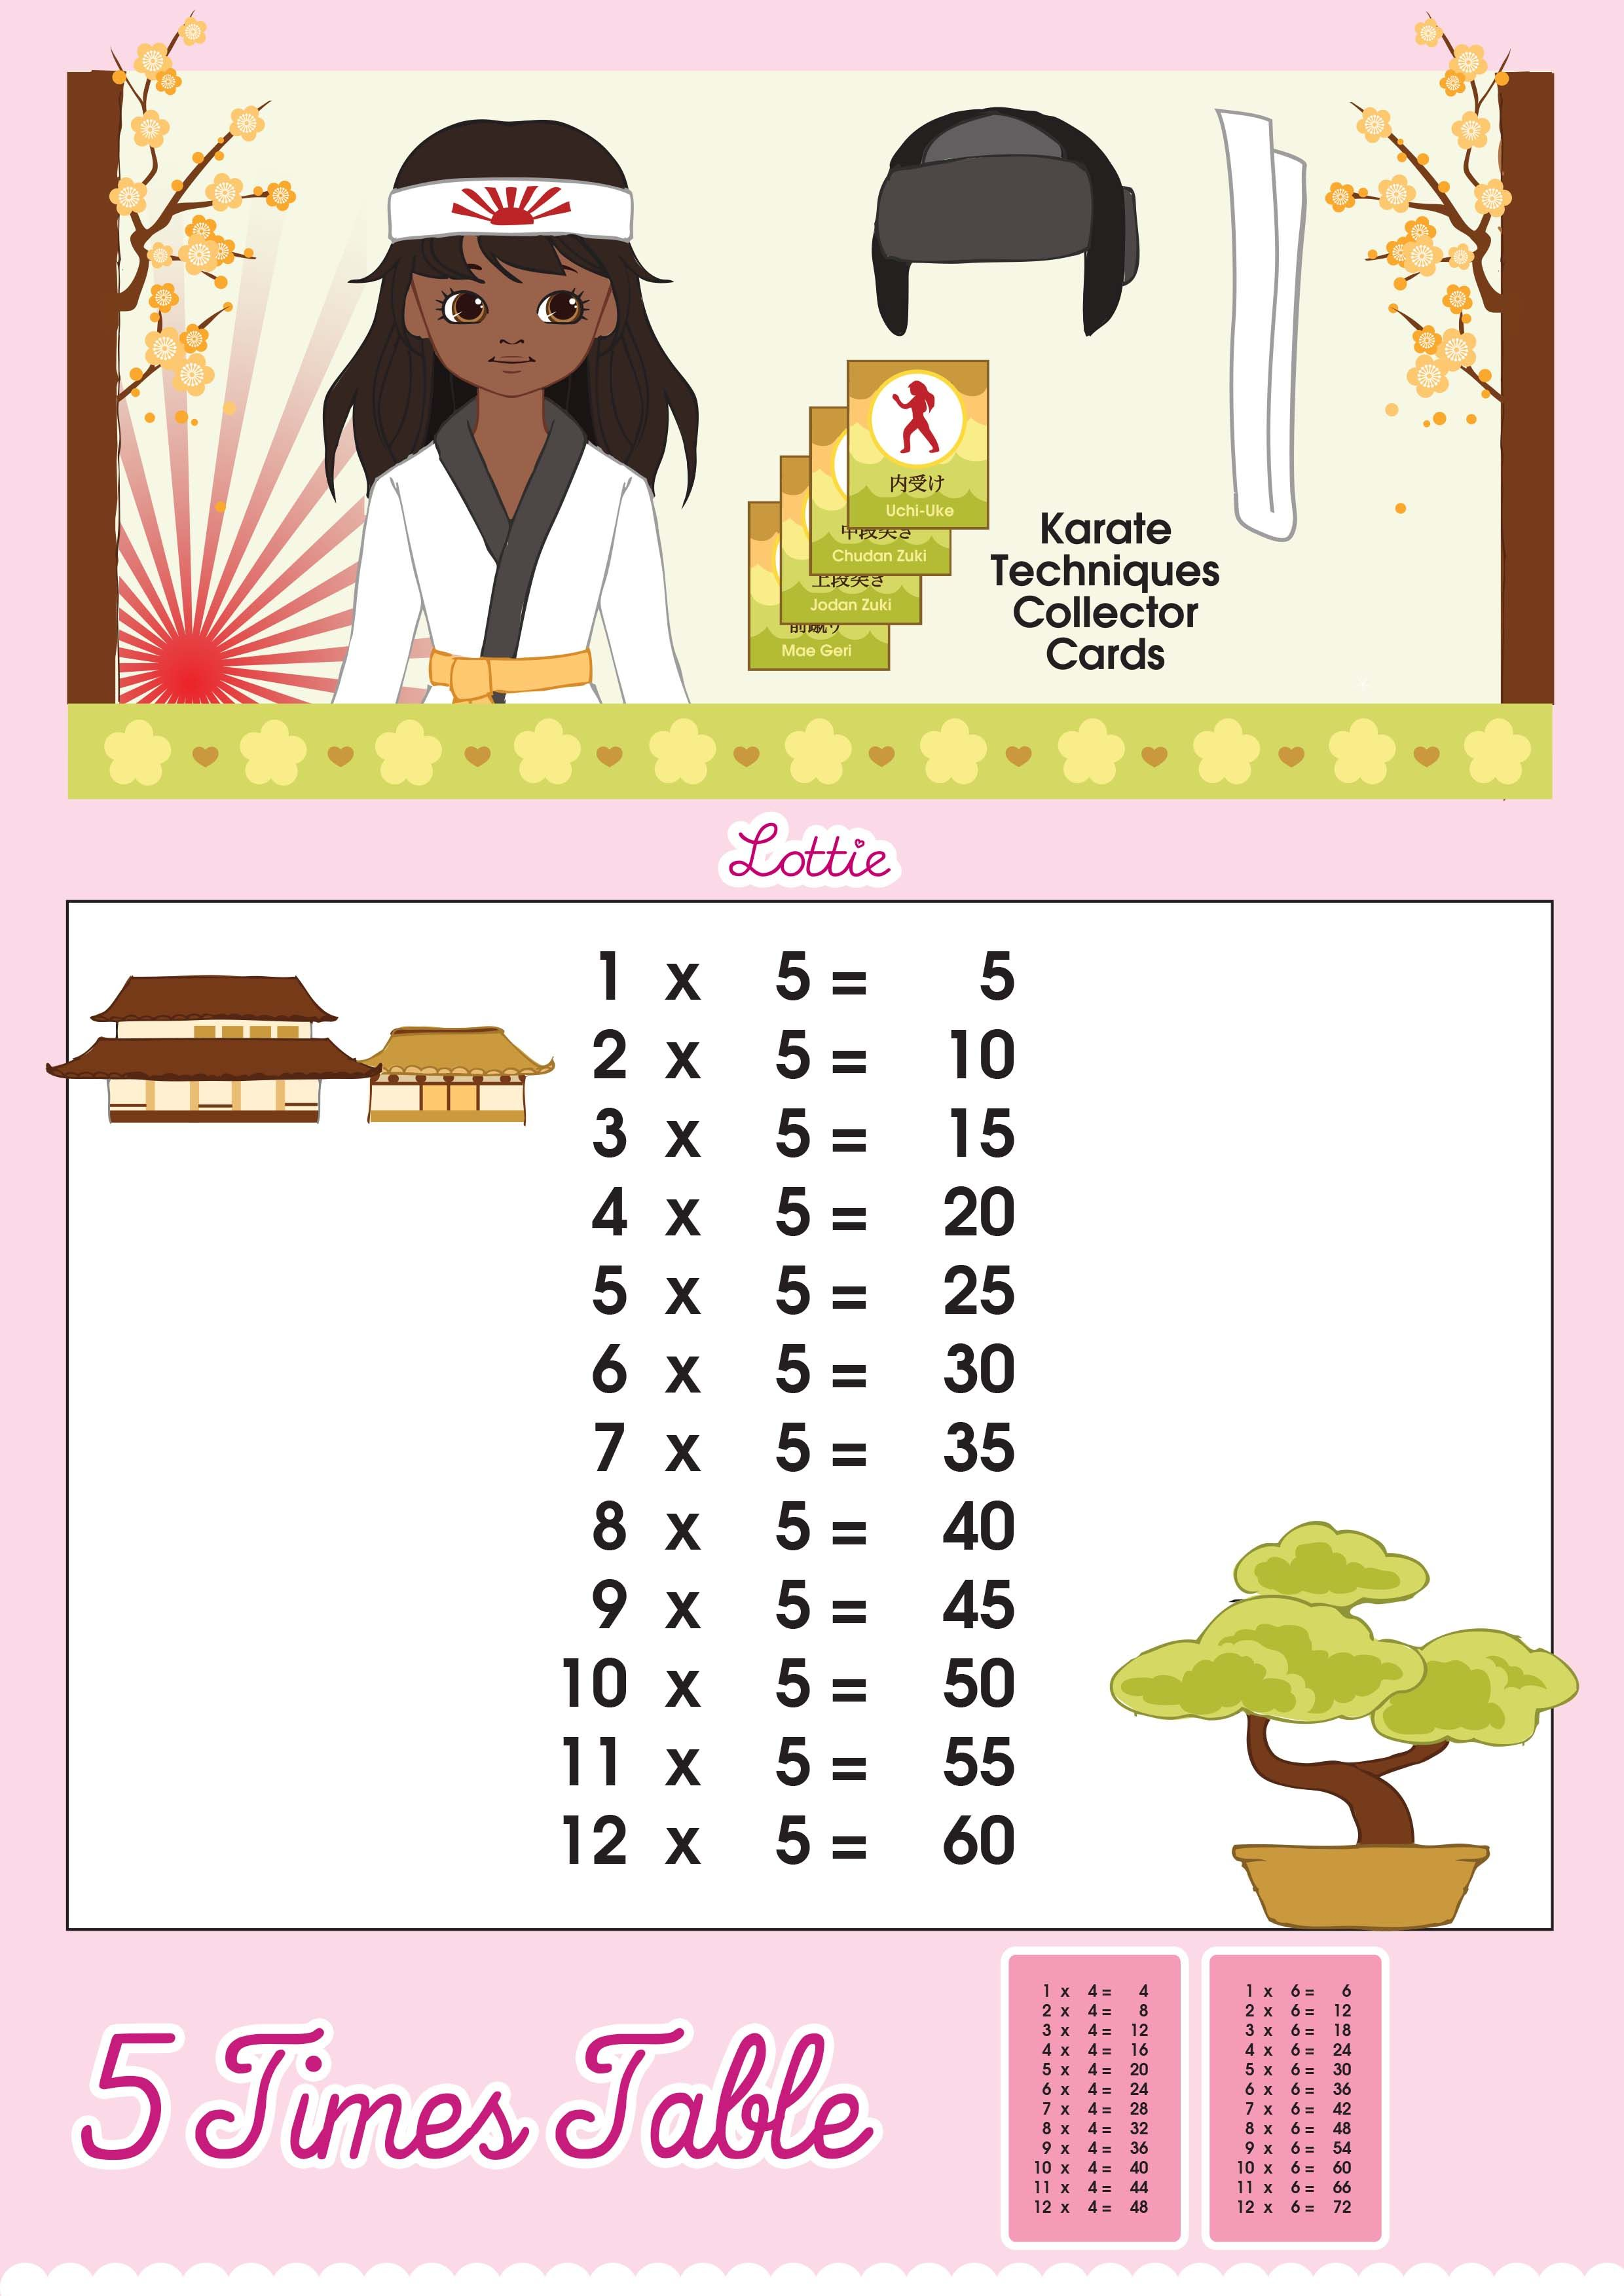 5 Times Table Multiplication Chart